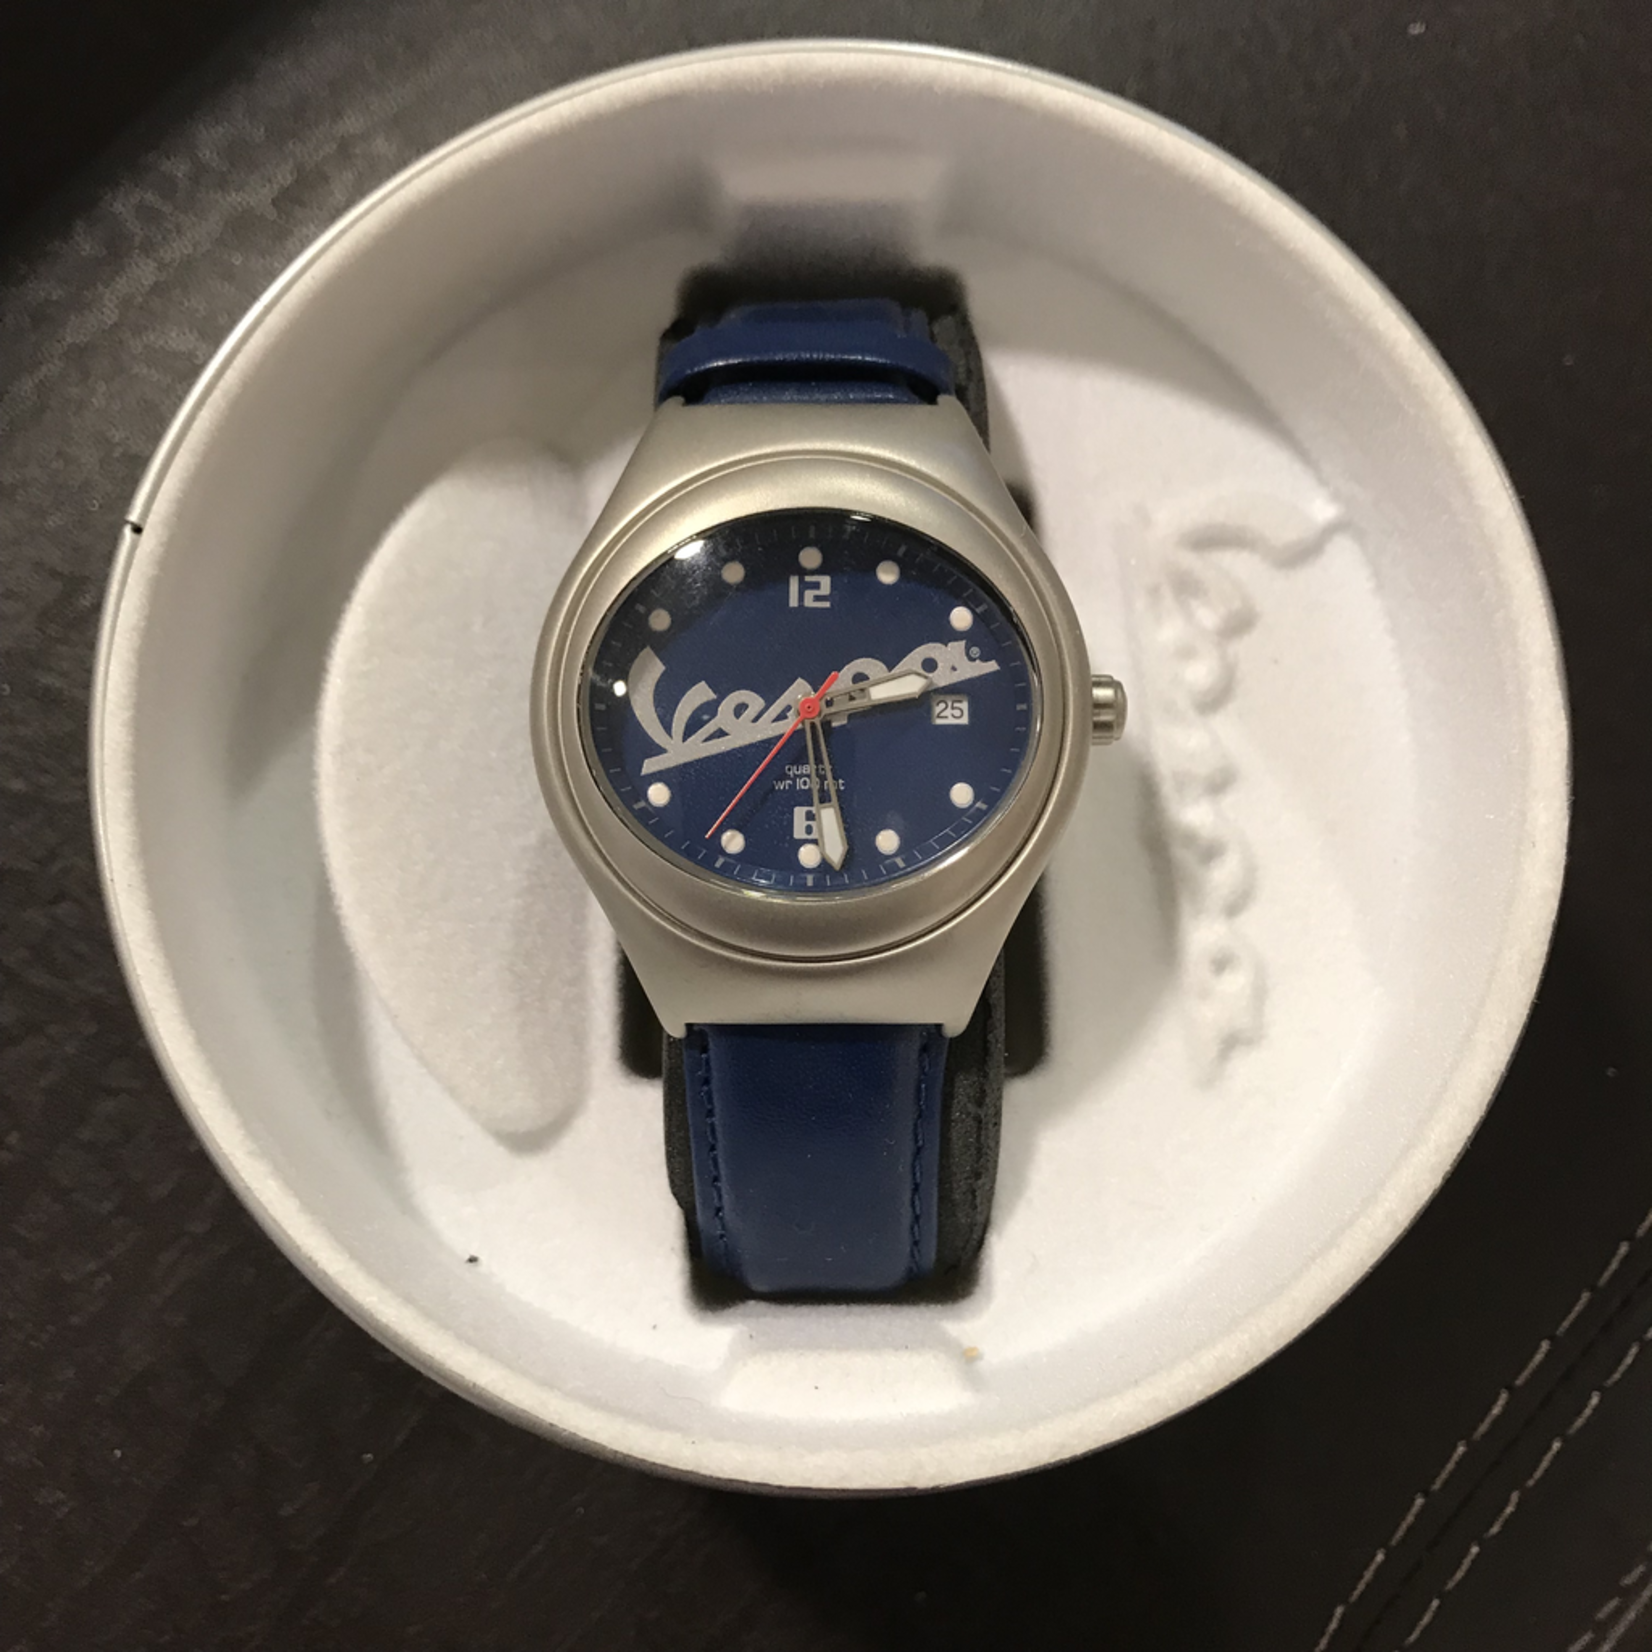 Lifestyle Watch, Vespa Blue Water Resistant to 100m